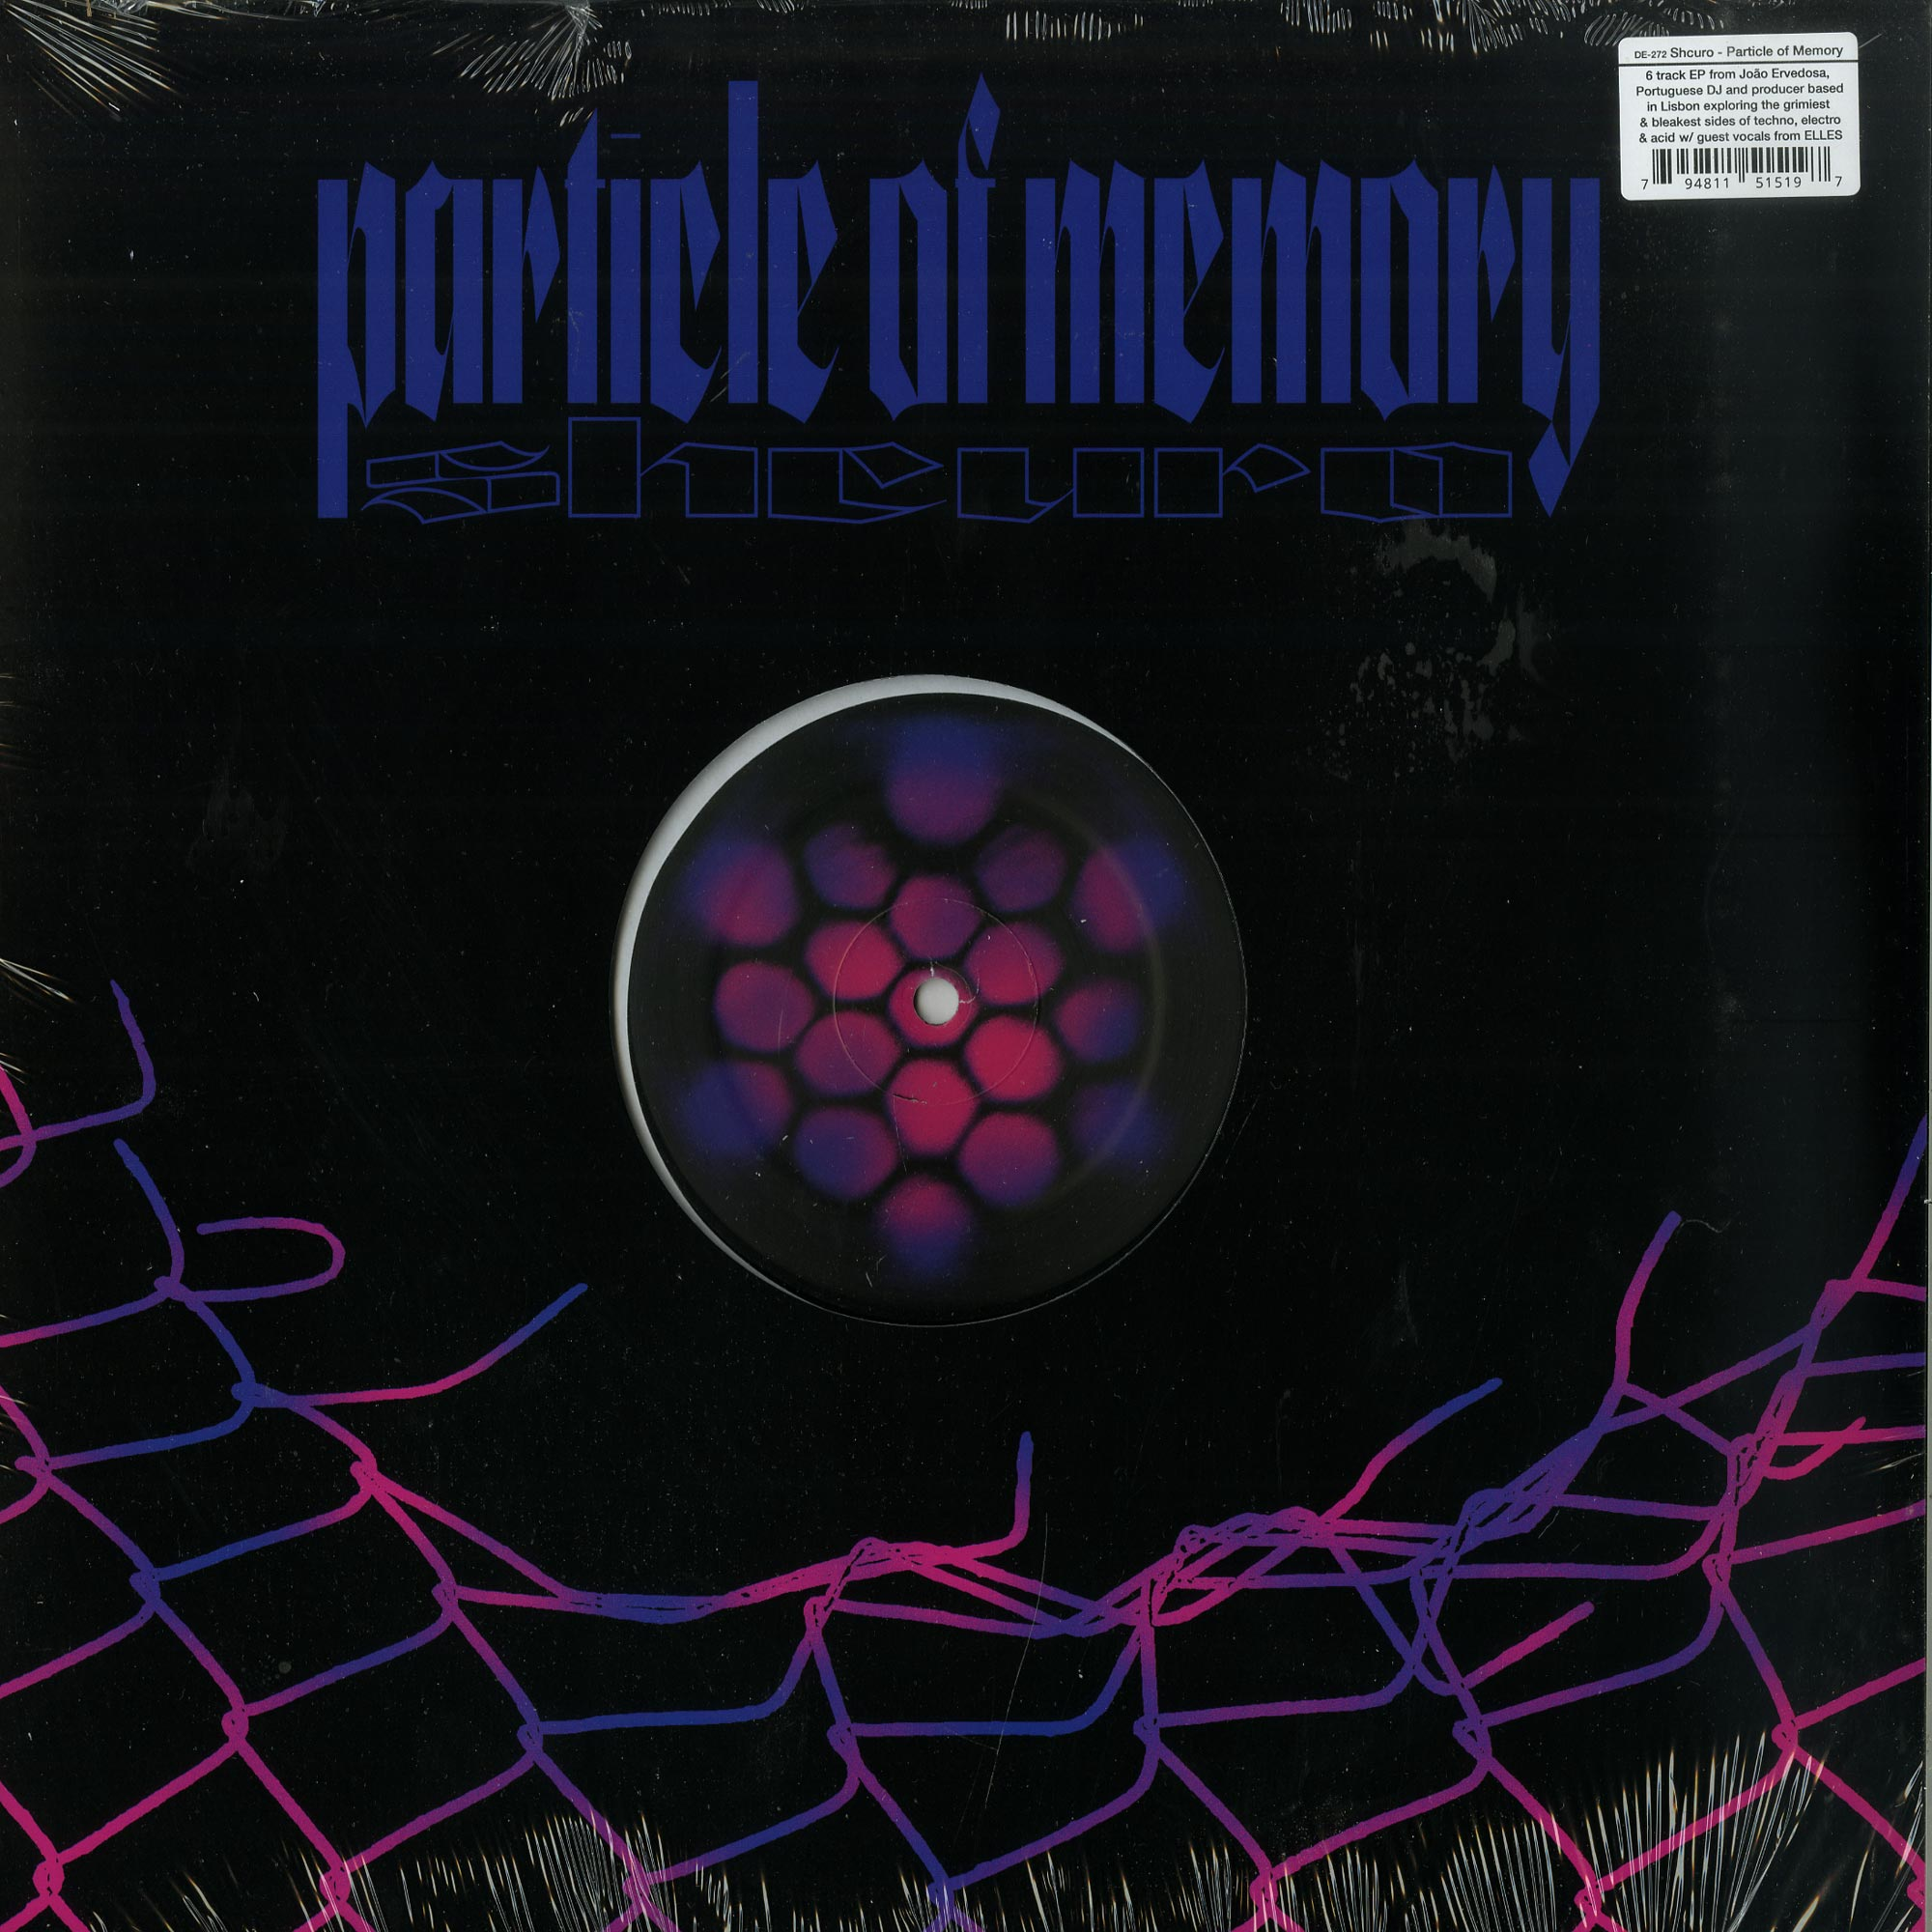 Shcuro - PARTICLE OF MEMORY